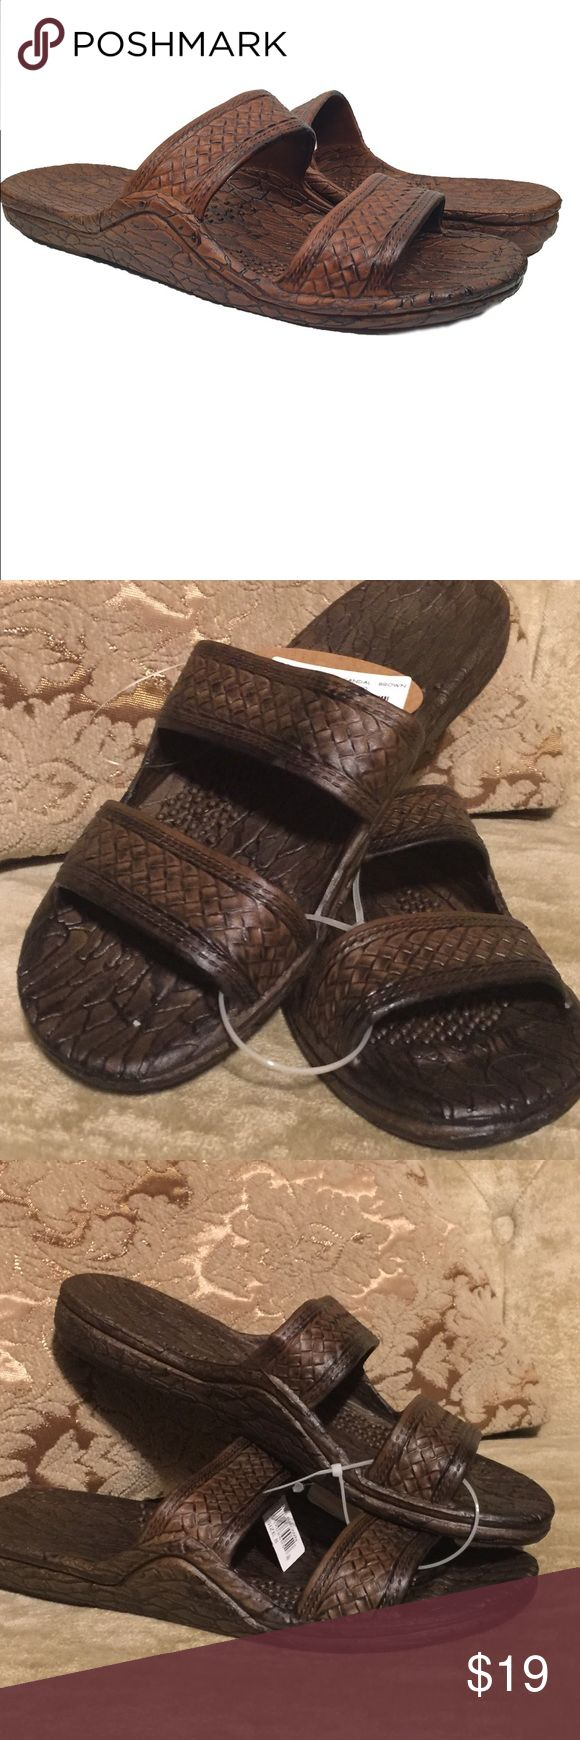 """""""Jandels"""" size 8 100% vegan Pali Hawaii Jesus Sandals aka 'Jandals' are stylish, comfortable, and one of the most popular sandals in Hawaii... Aloha! Shoes Sandals"""